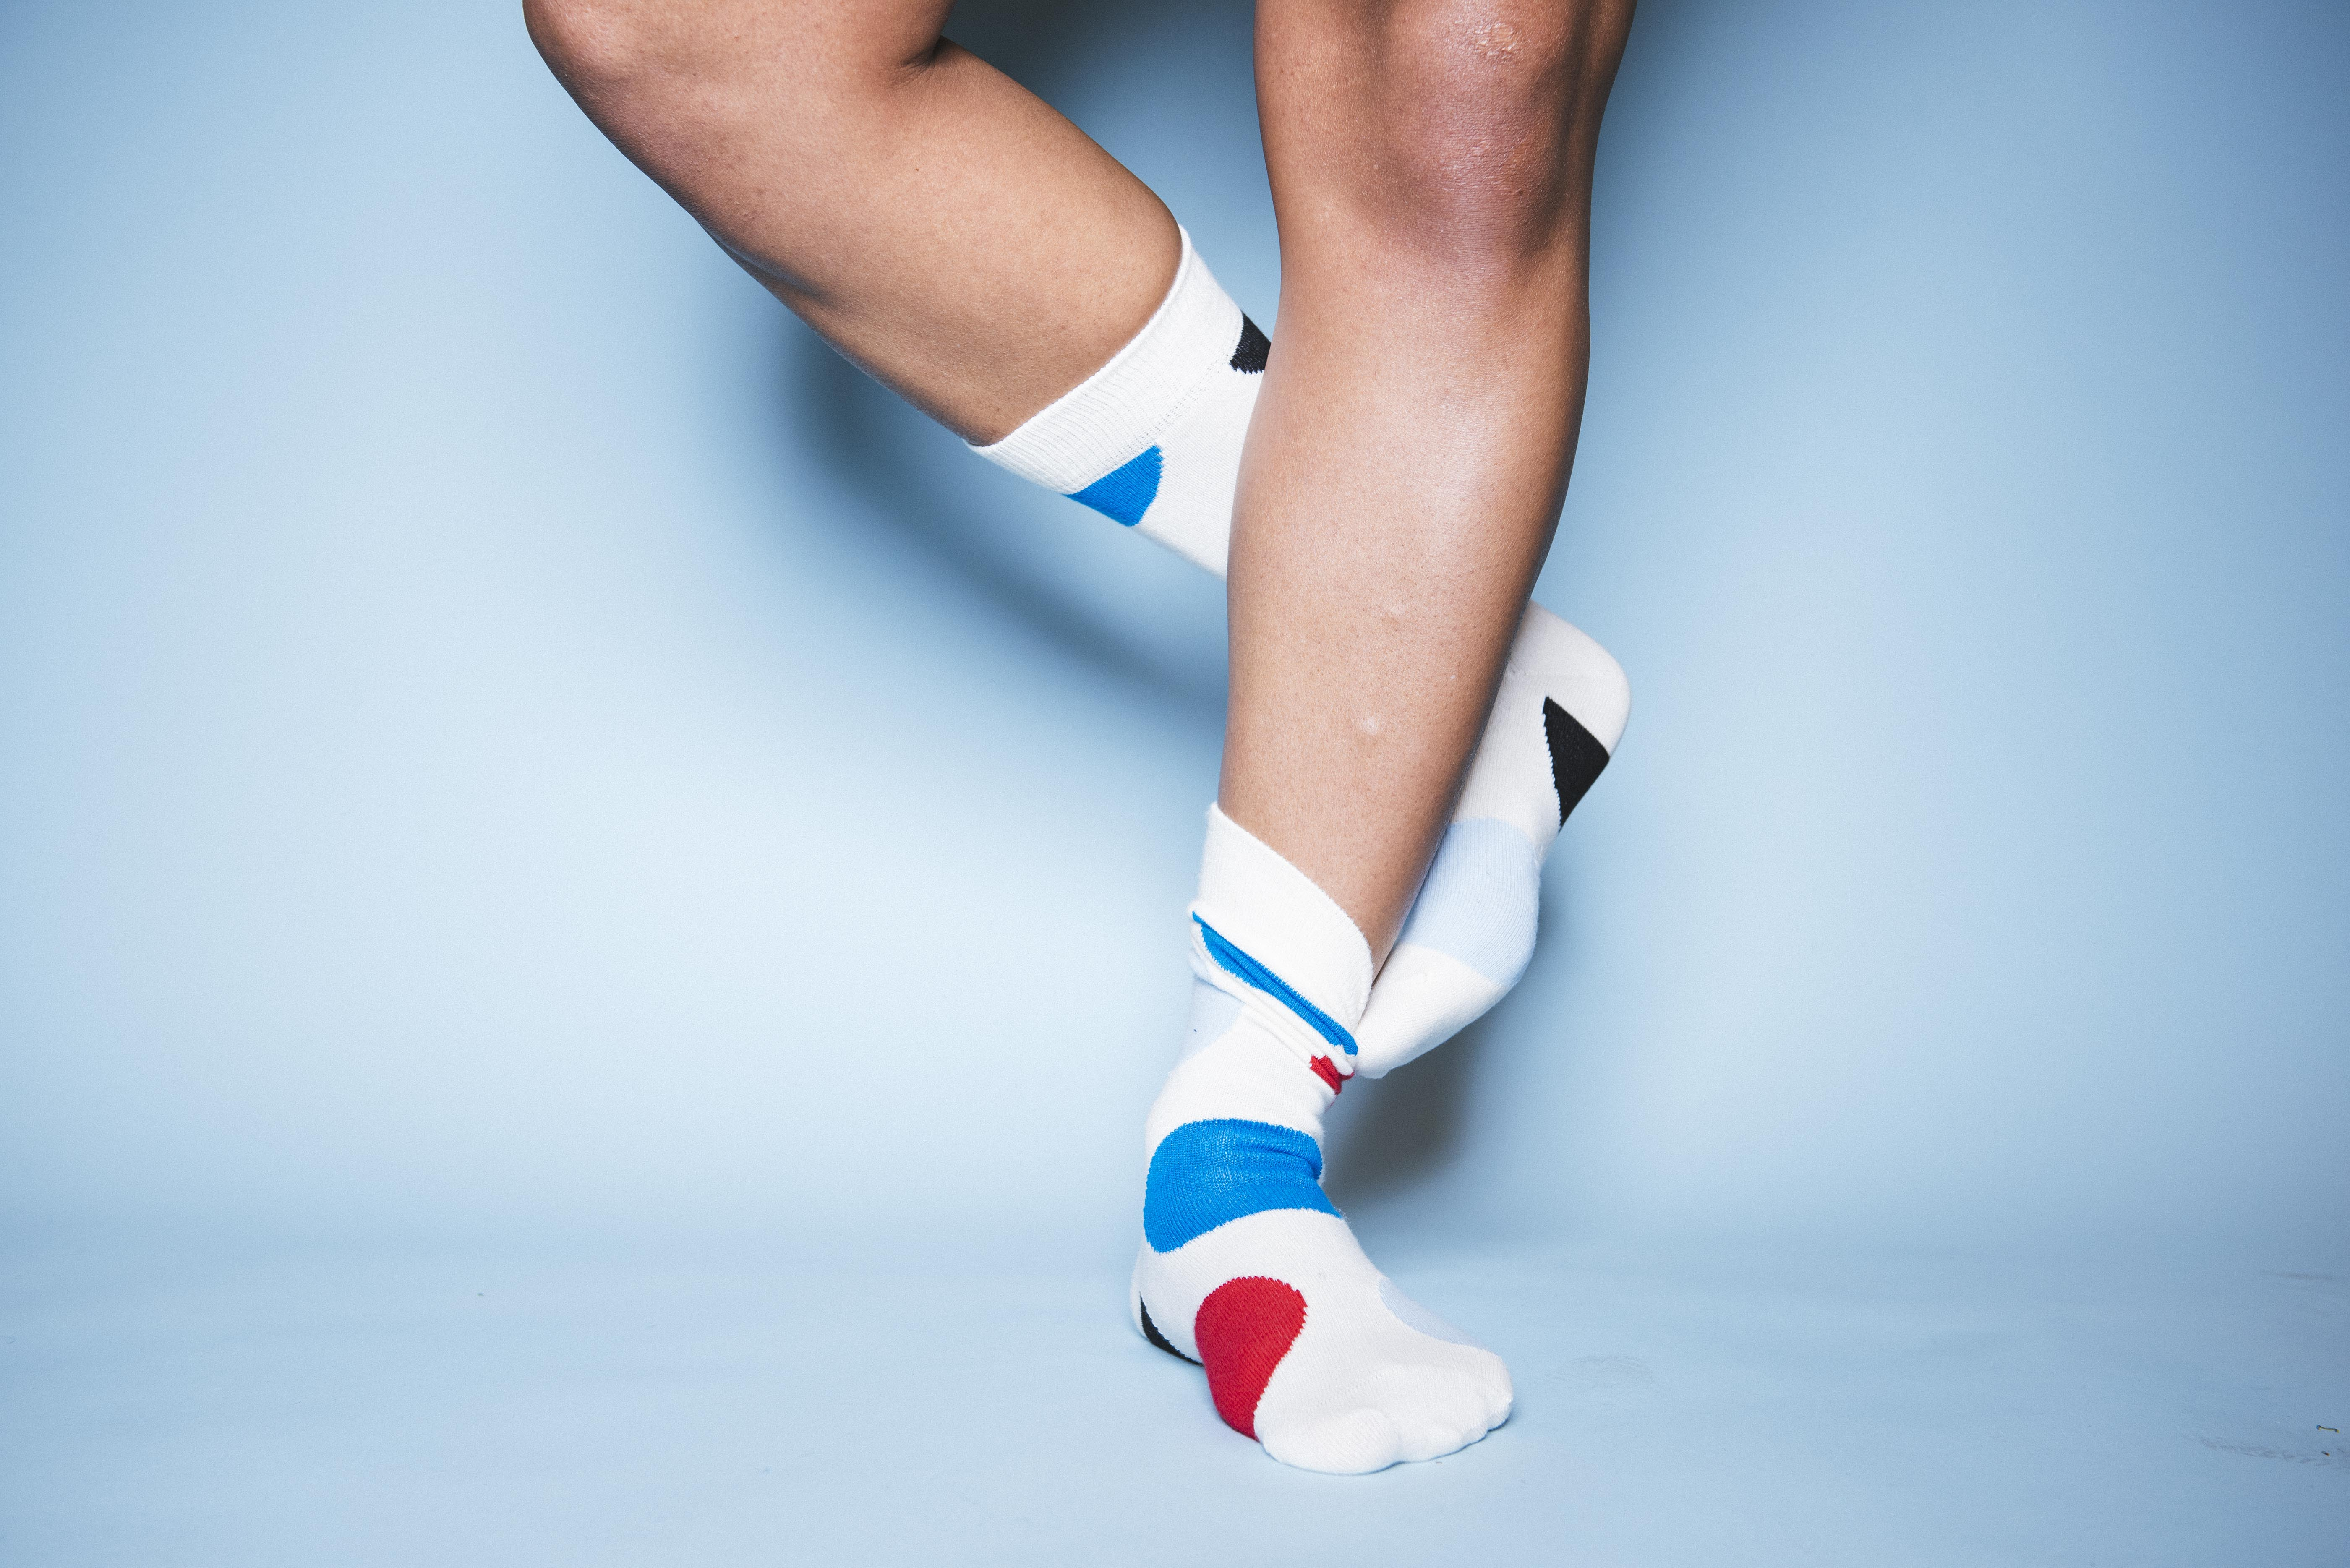 Why Do My Legs Get Itchy In The Winter? The Experts Explain